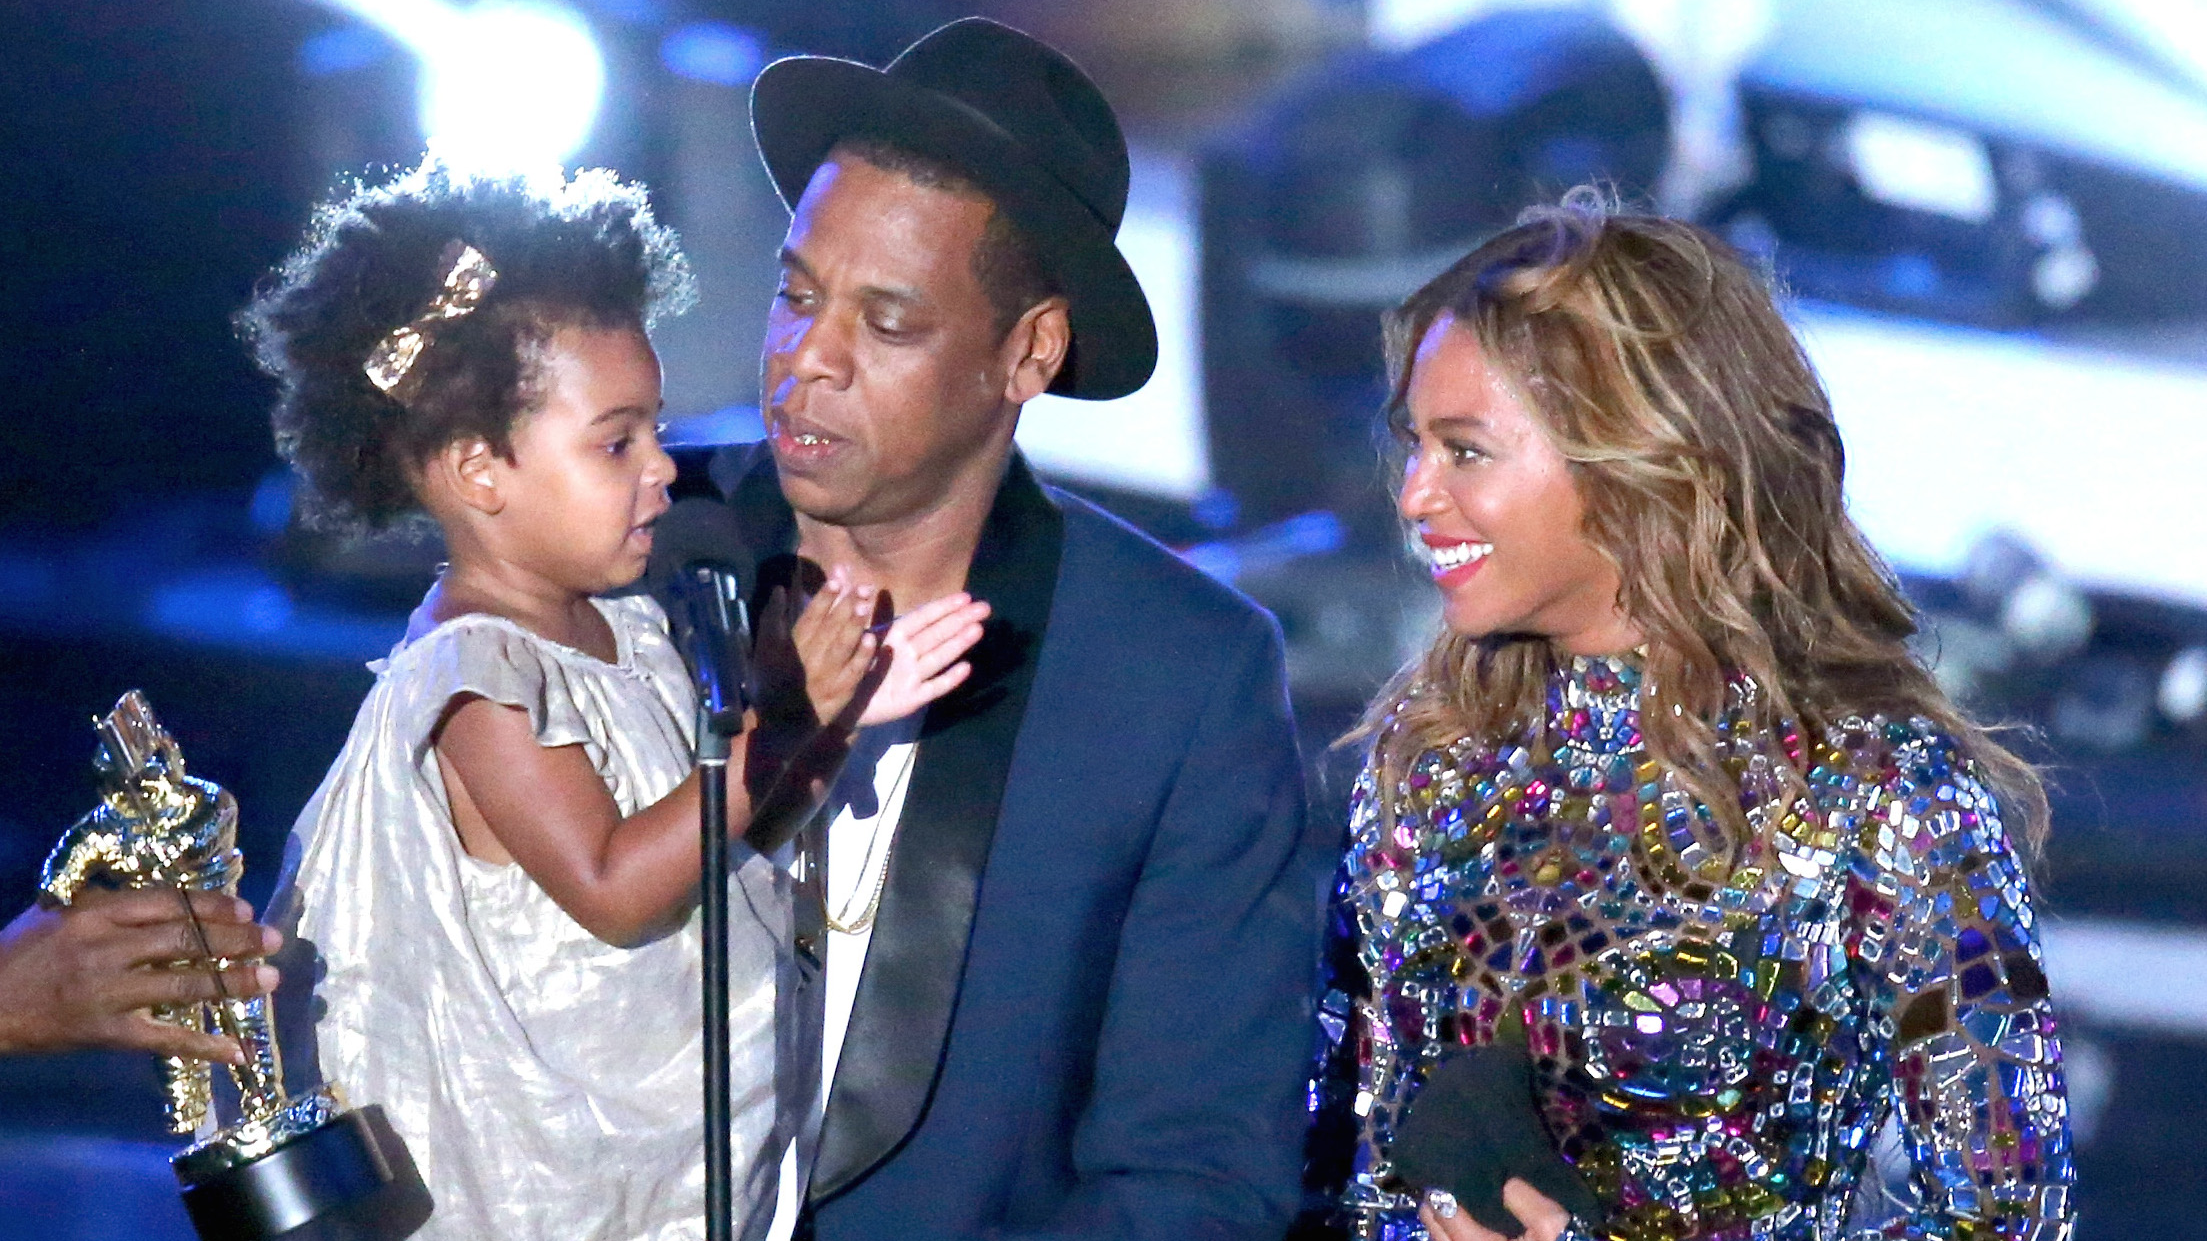 Beyoncé hedges her bets on Blue Ivy, invests in new mini-Beyoncés from YouTube.